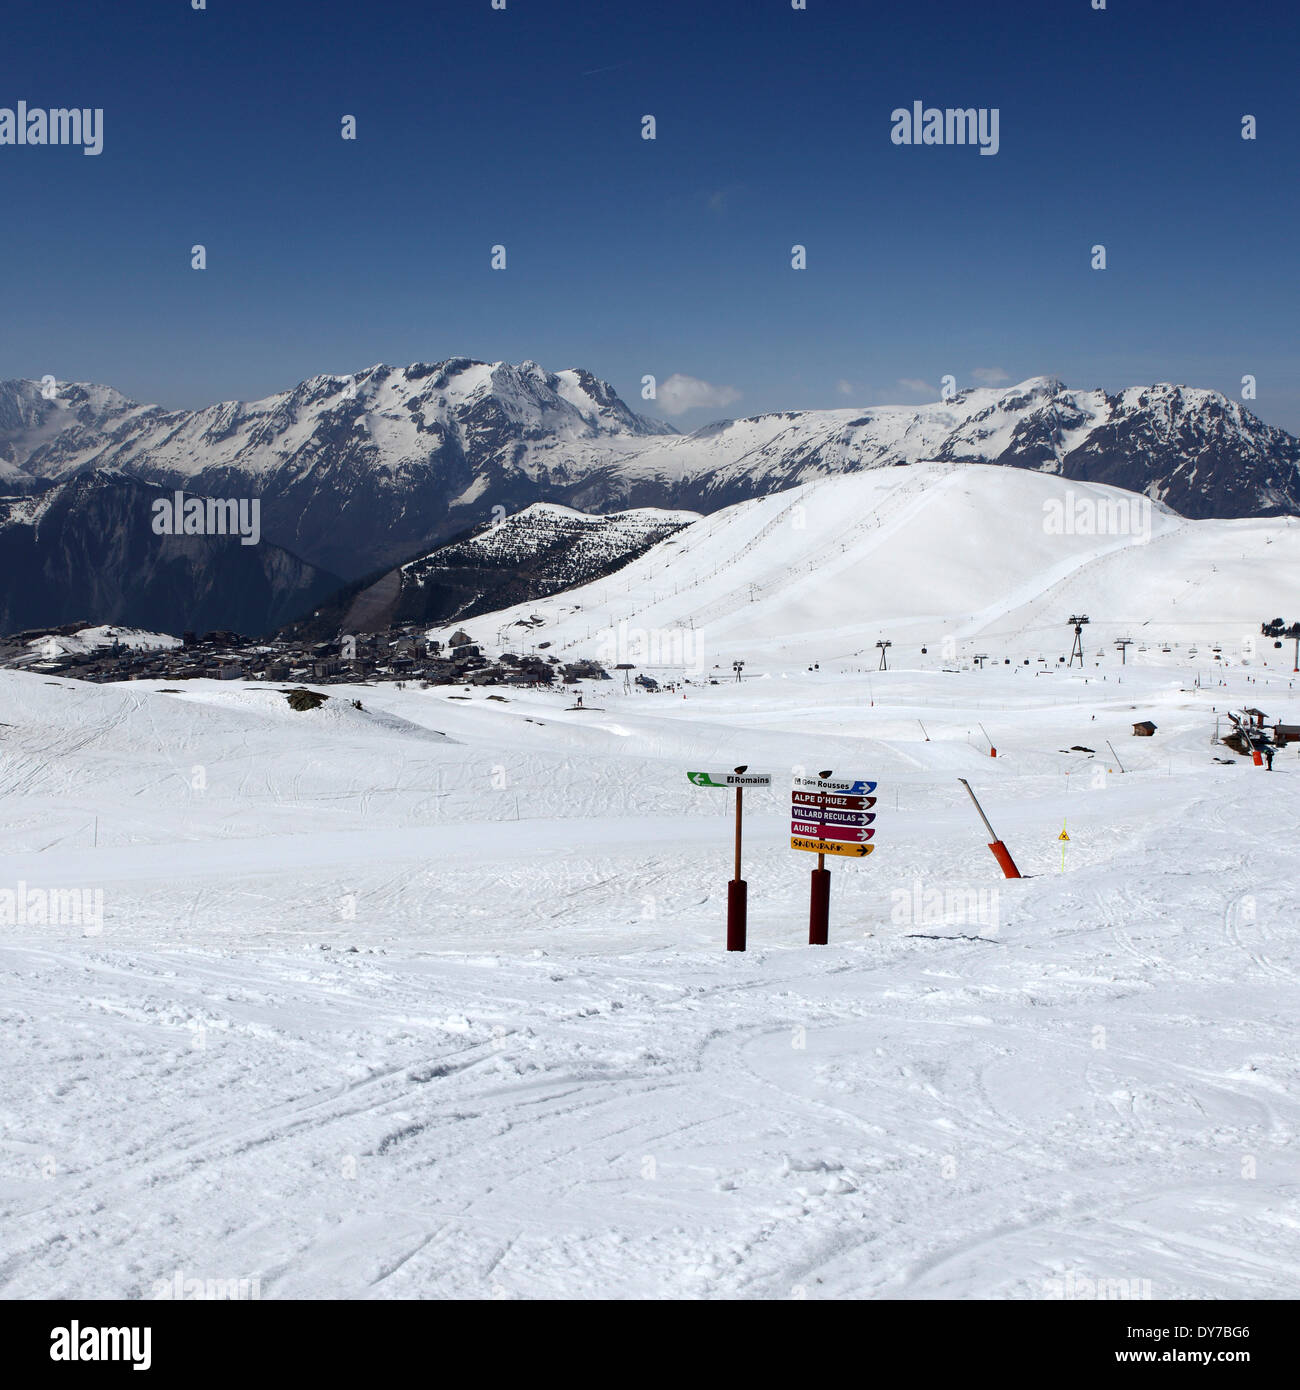 Signs and a snow covered Alpine skiing piste at Alpe d'Huez, France. - Stock Image